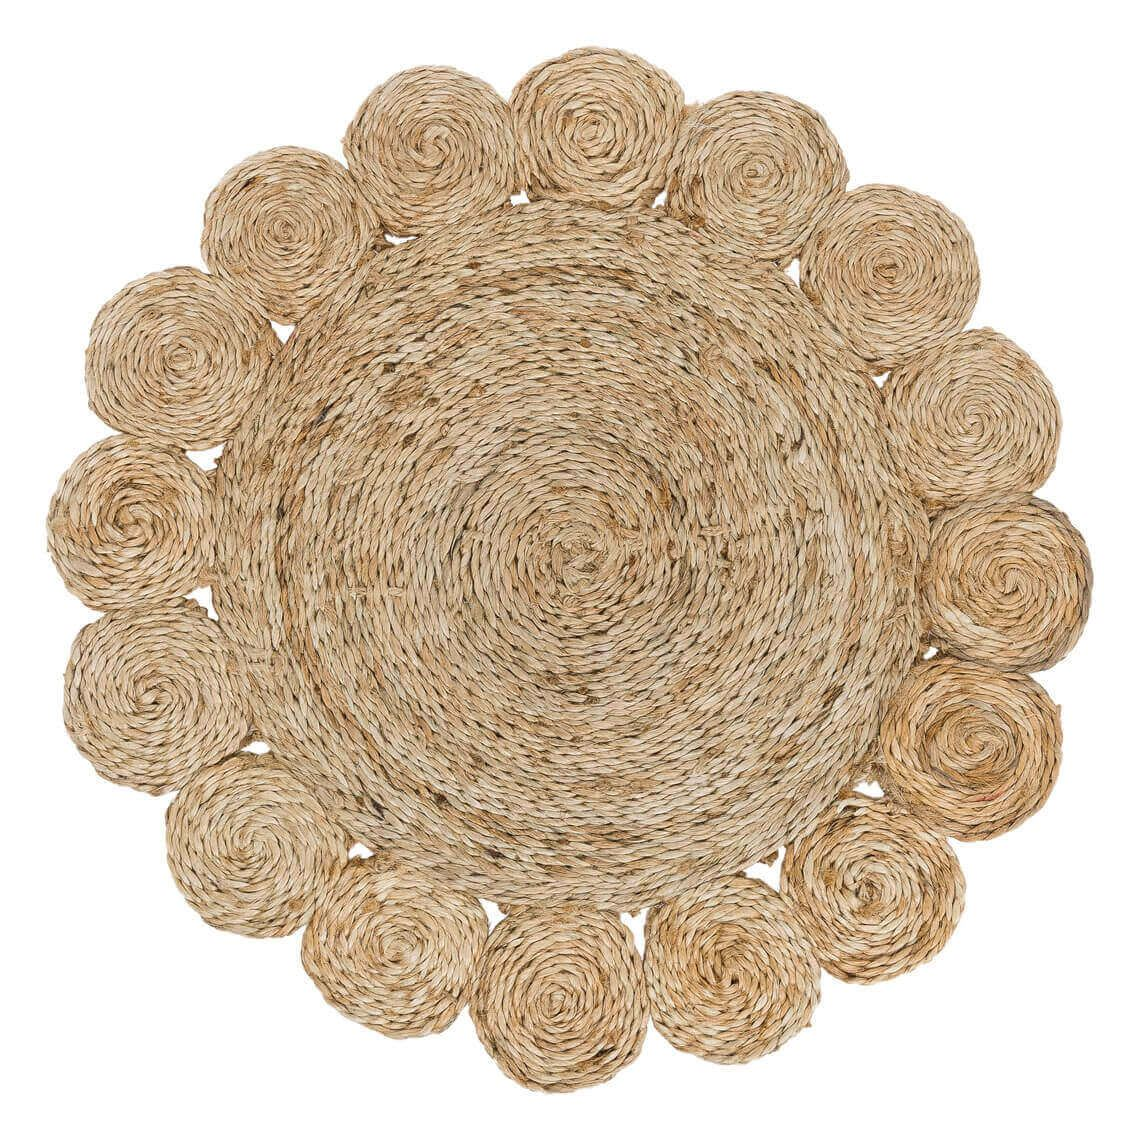 Omani Placemat Size W 36cm x D 36cm x H 1cm in Natural Jute Freedom by Freedom, a Placemats for sale on Style Sourcebook